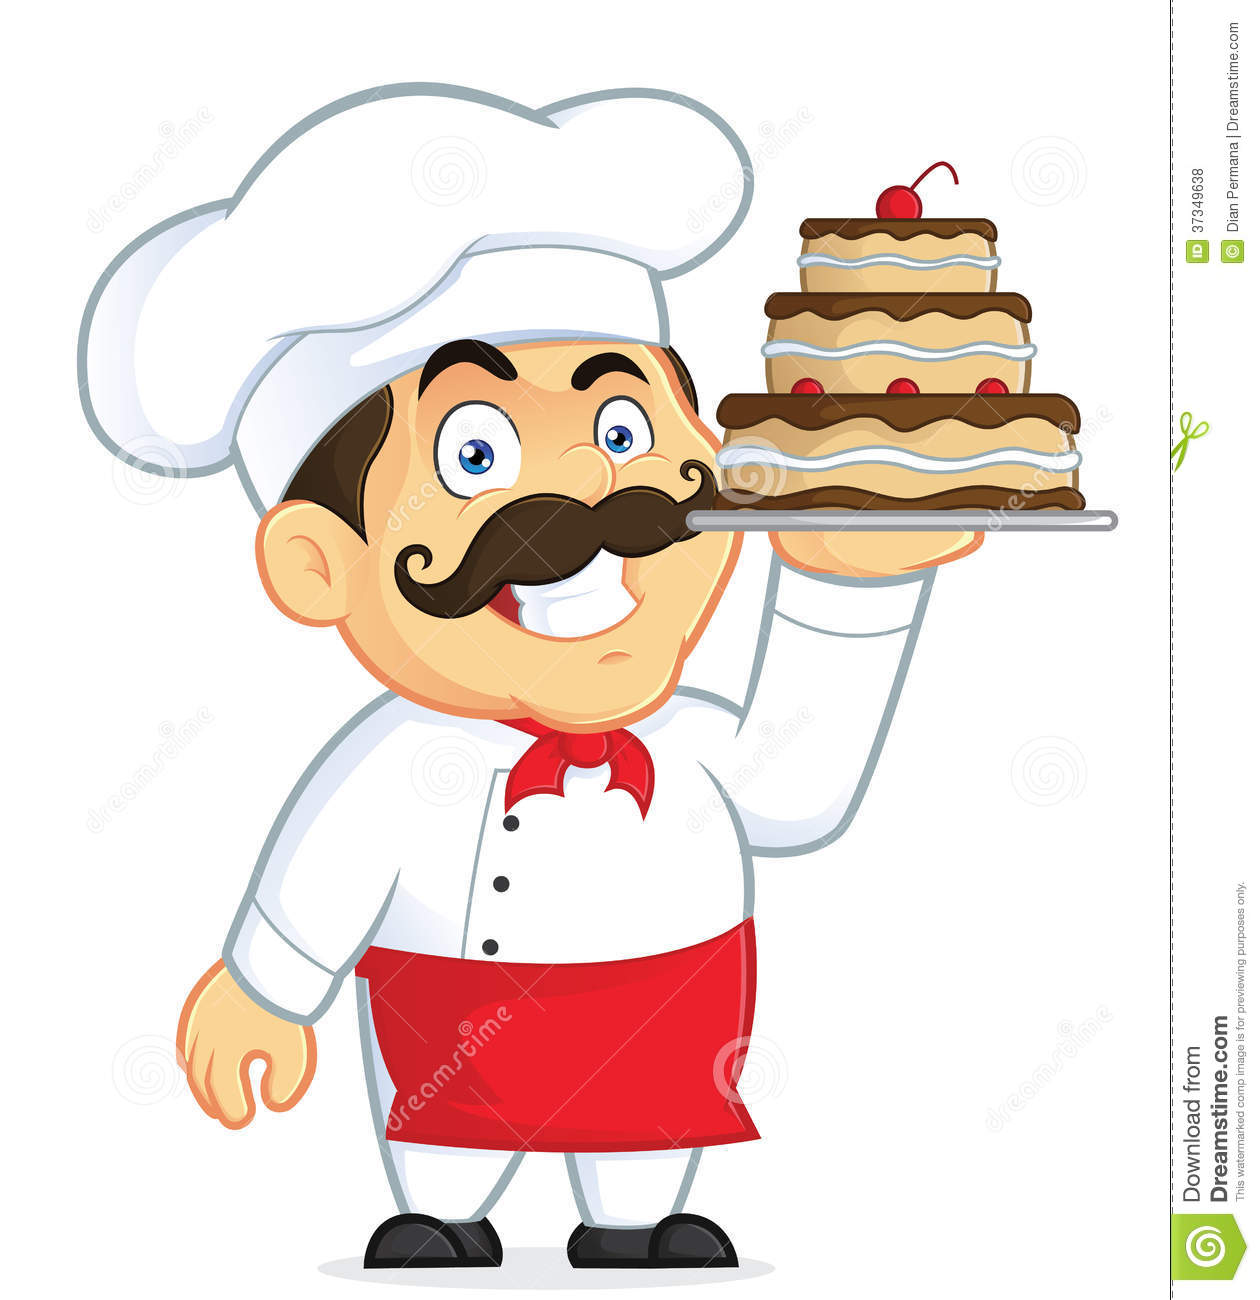 chef with chocolate cake stock vector illustration of chef clipart free download chef clipart images